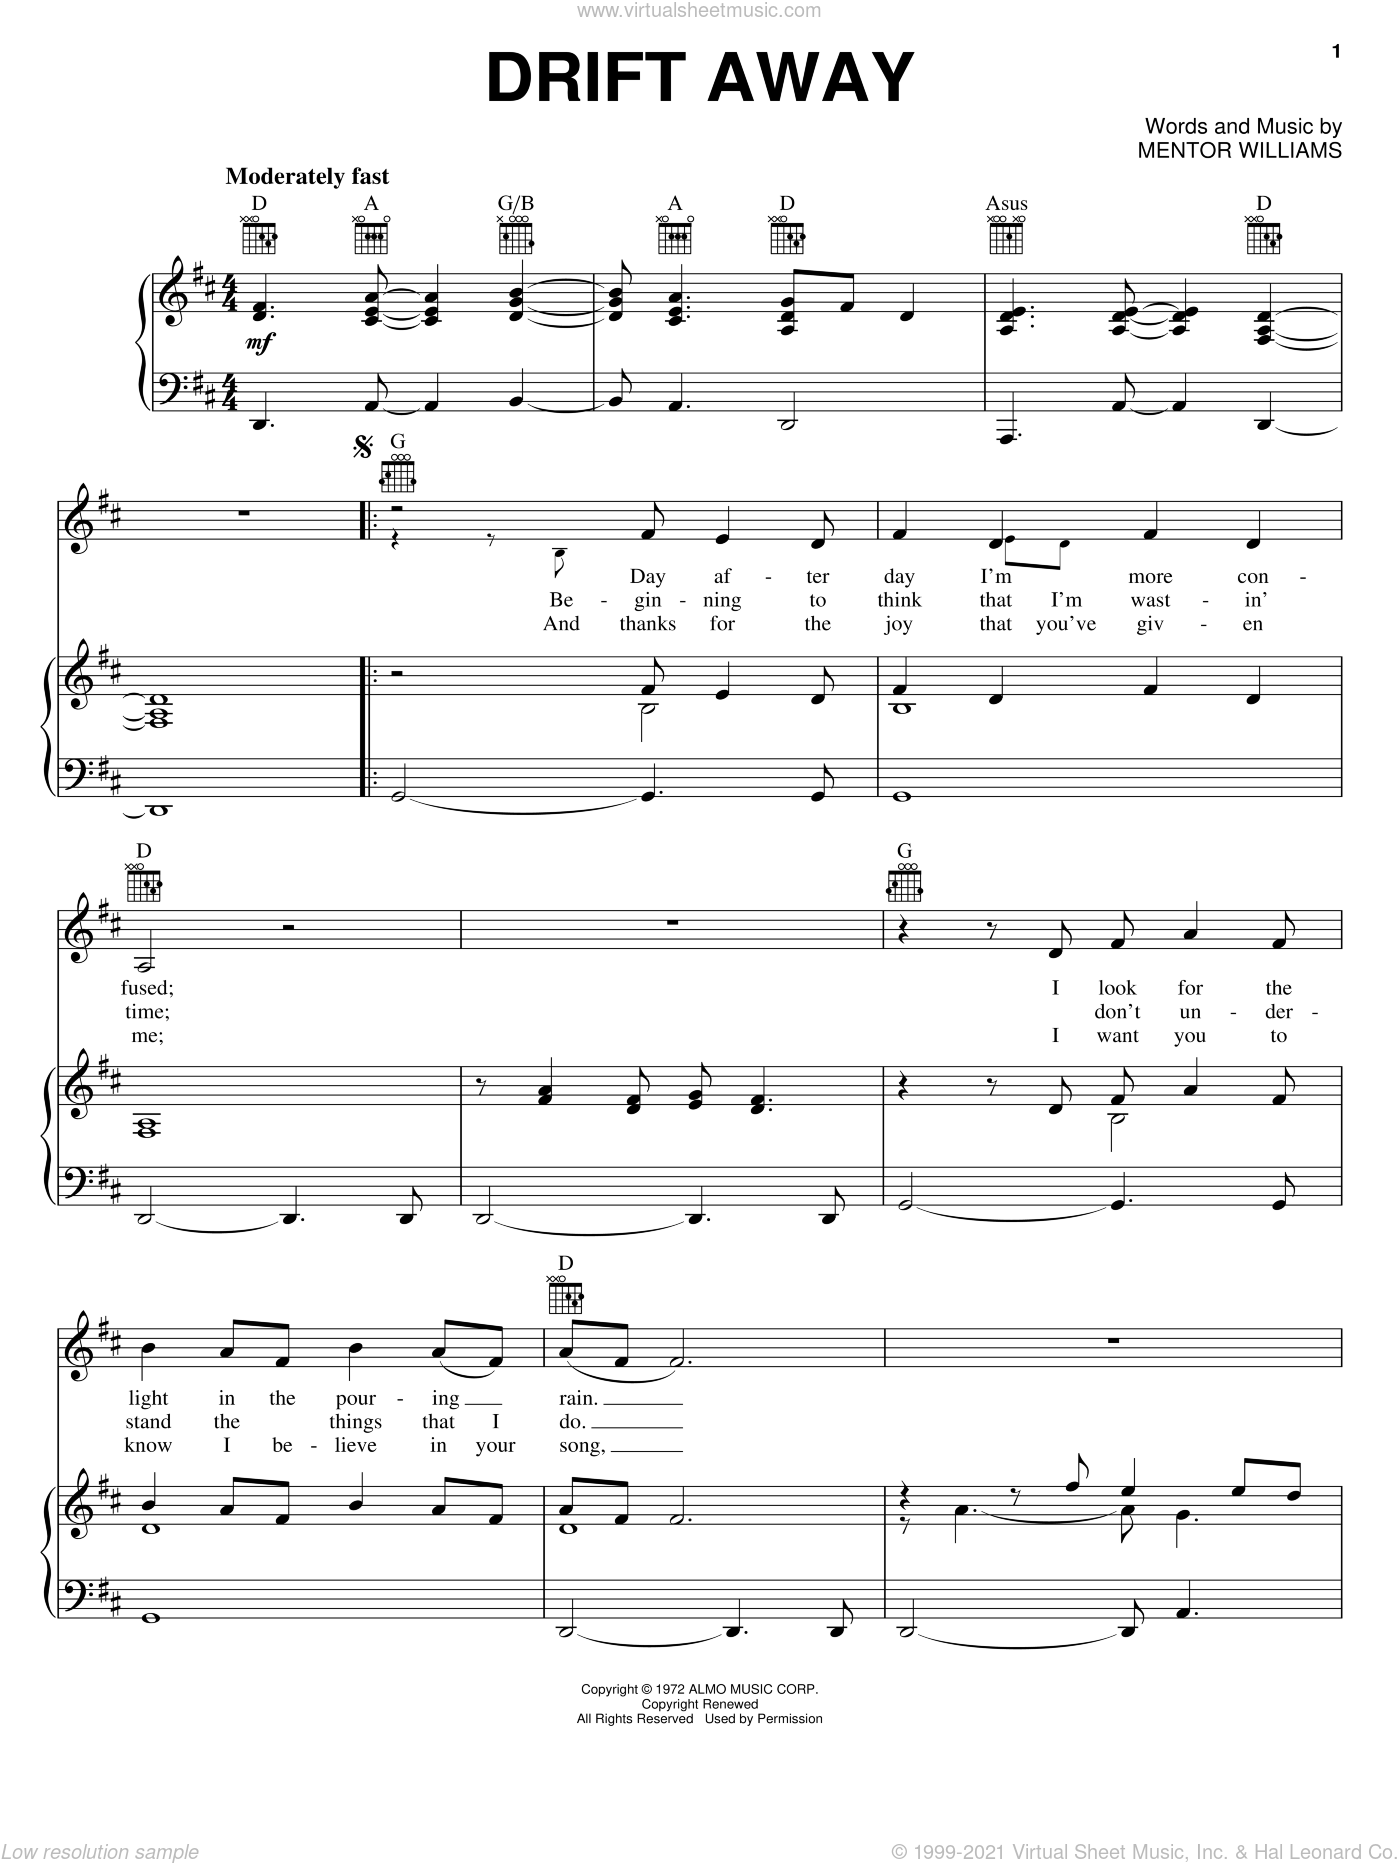 Drift Away sheet music for voice, piano or guitar by Uncle Kracker, Dobie Gray and Mentor Williams, intermediate